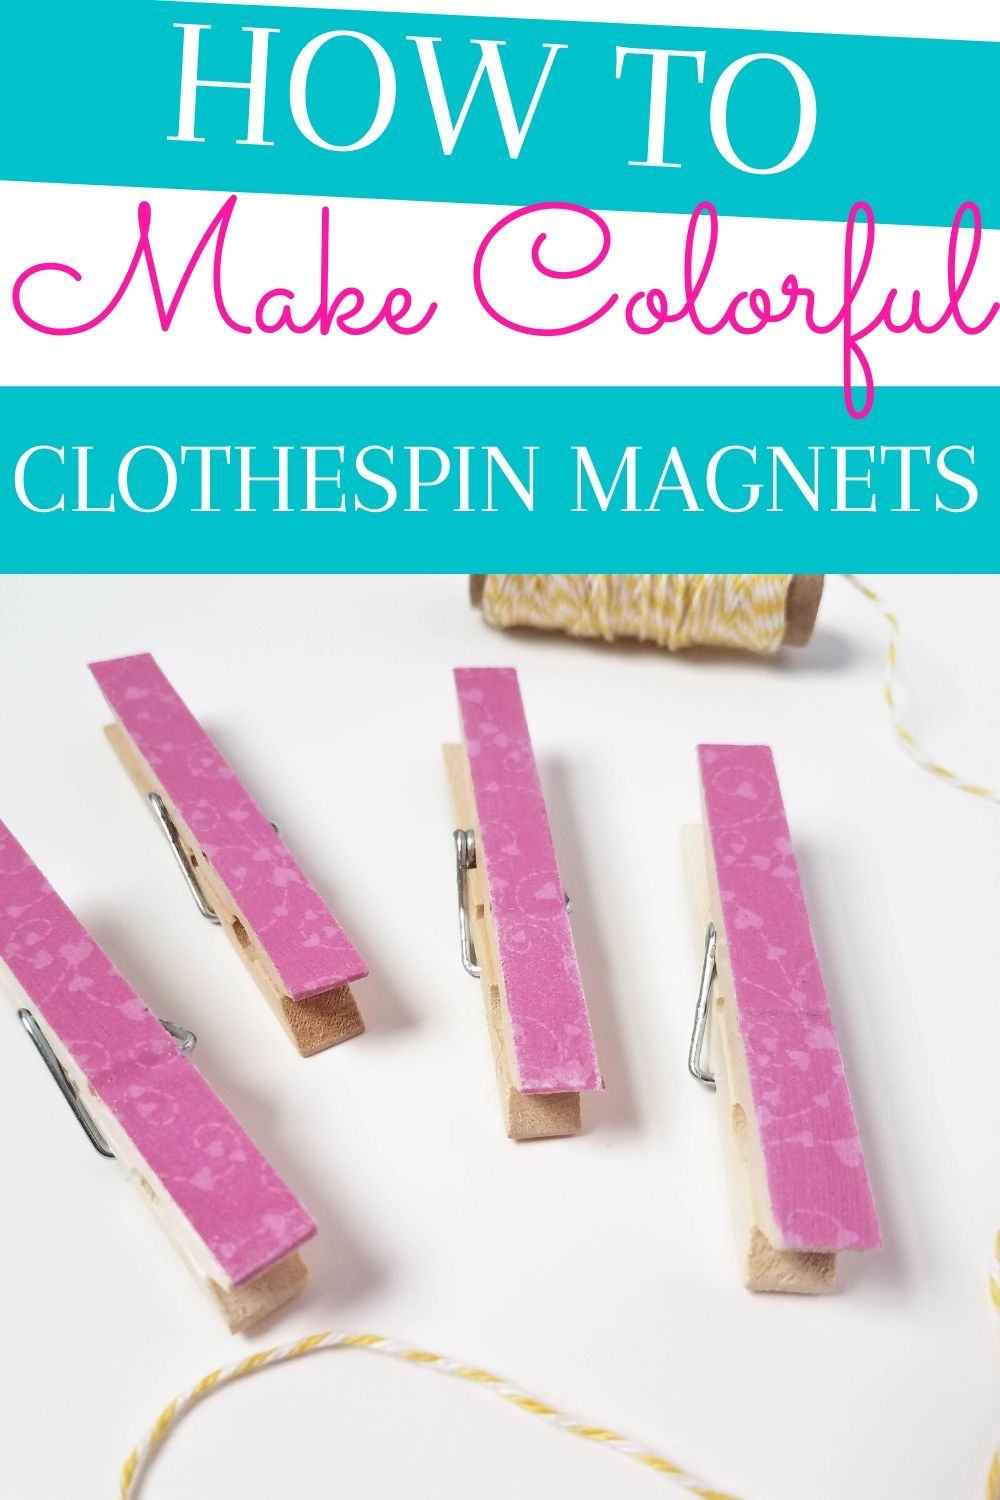 How to Make Colorful Clothespin Magnets for your fridge and more. Great for hanging photos, shopping lists, or adding a pop of color to the room #clothespins #craft #diy #easy #howto #colorful #kidsroom #fridge via @homebyjenn